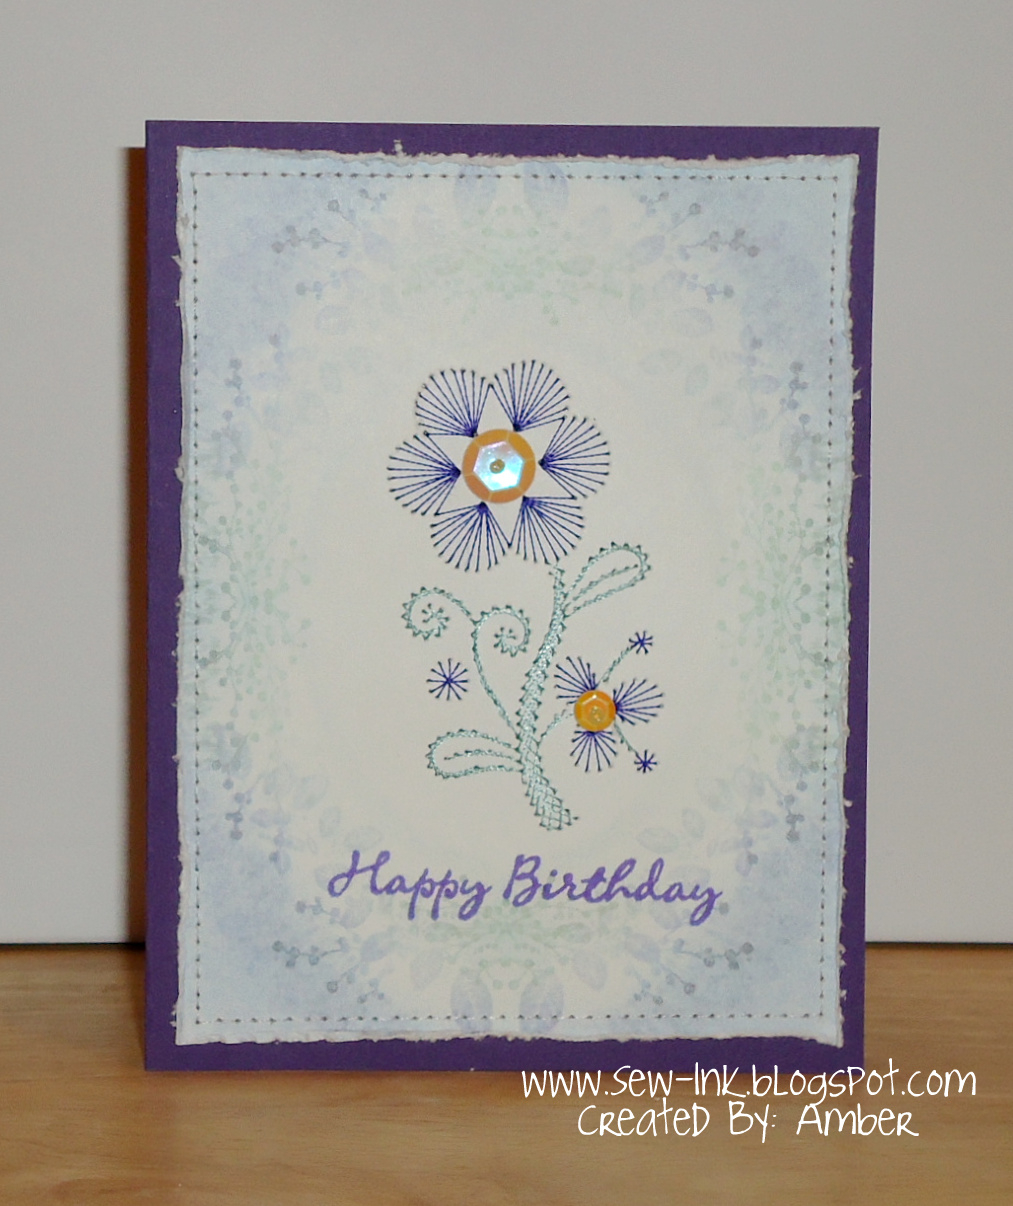 Paper Embroidery Cards Free Patterns Free Patterns Paper Embroidery Free Embroidery Patterns